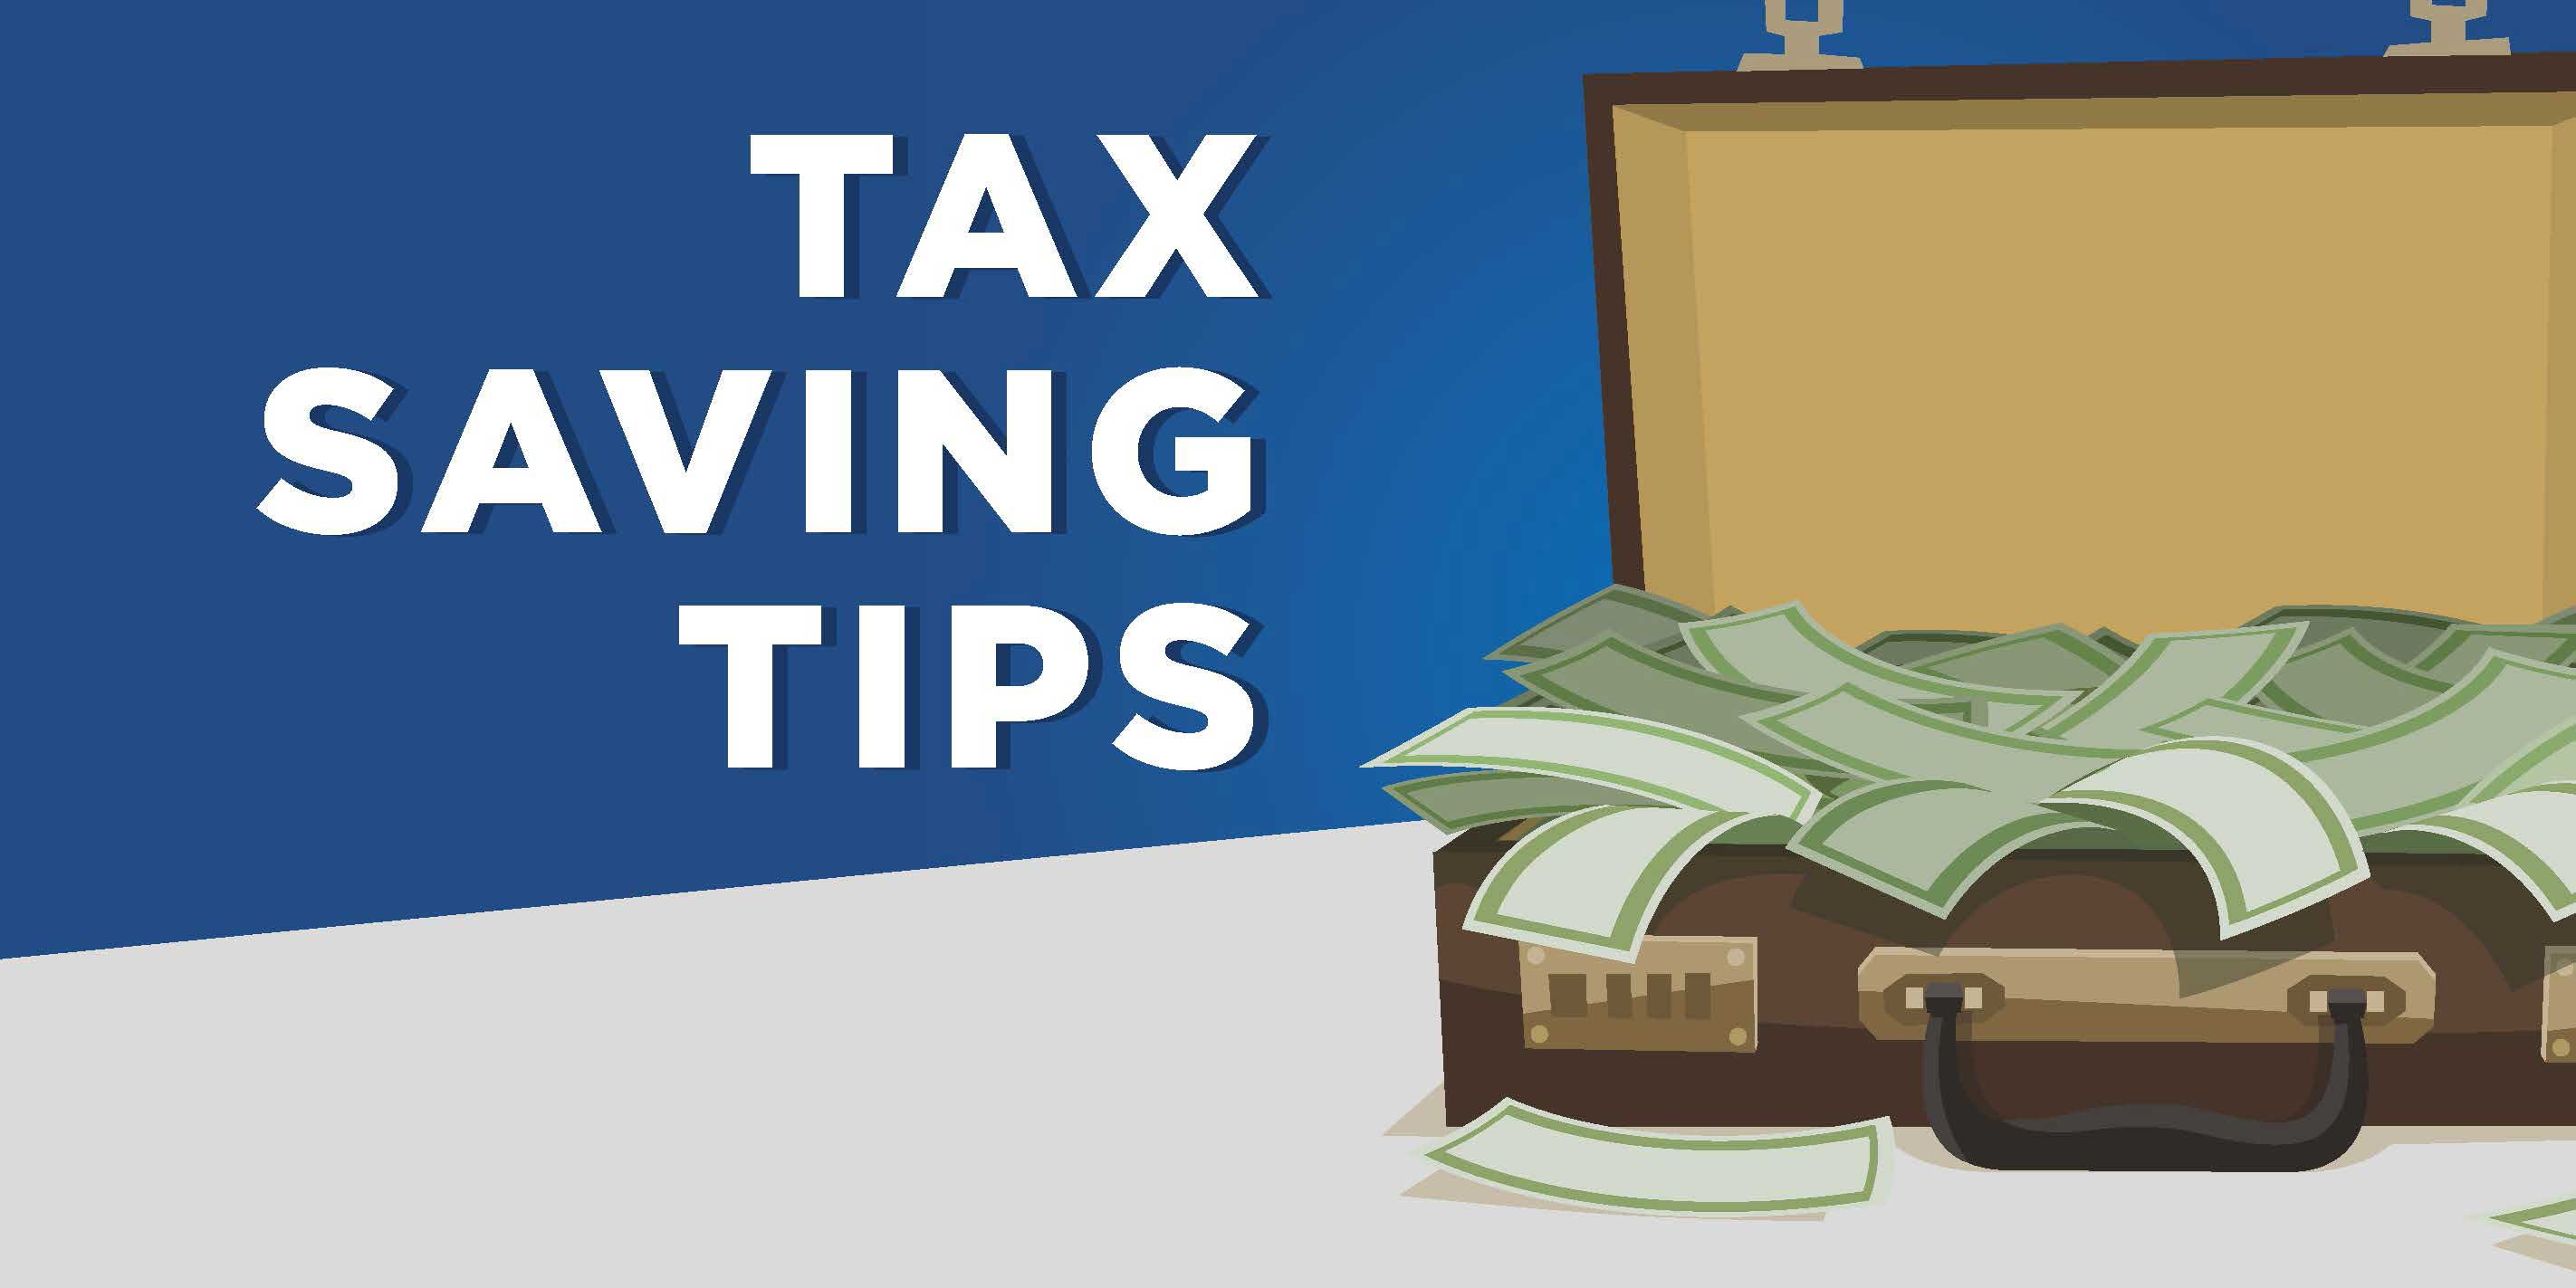 Tip to save tax who has net income of over £100,000